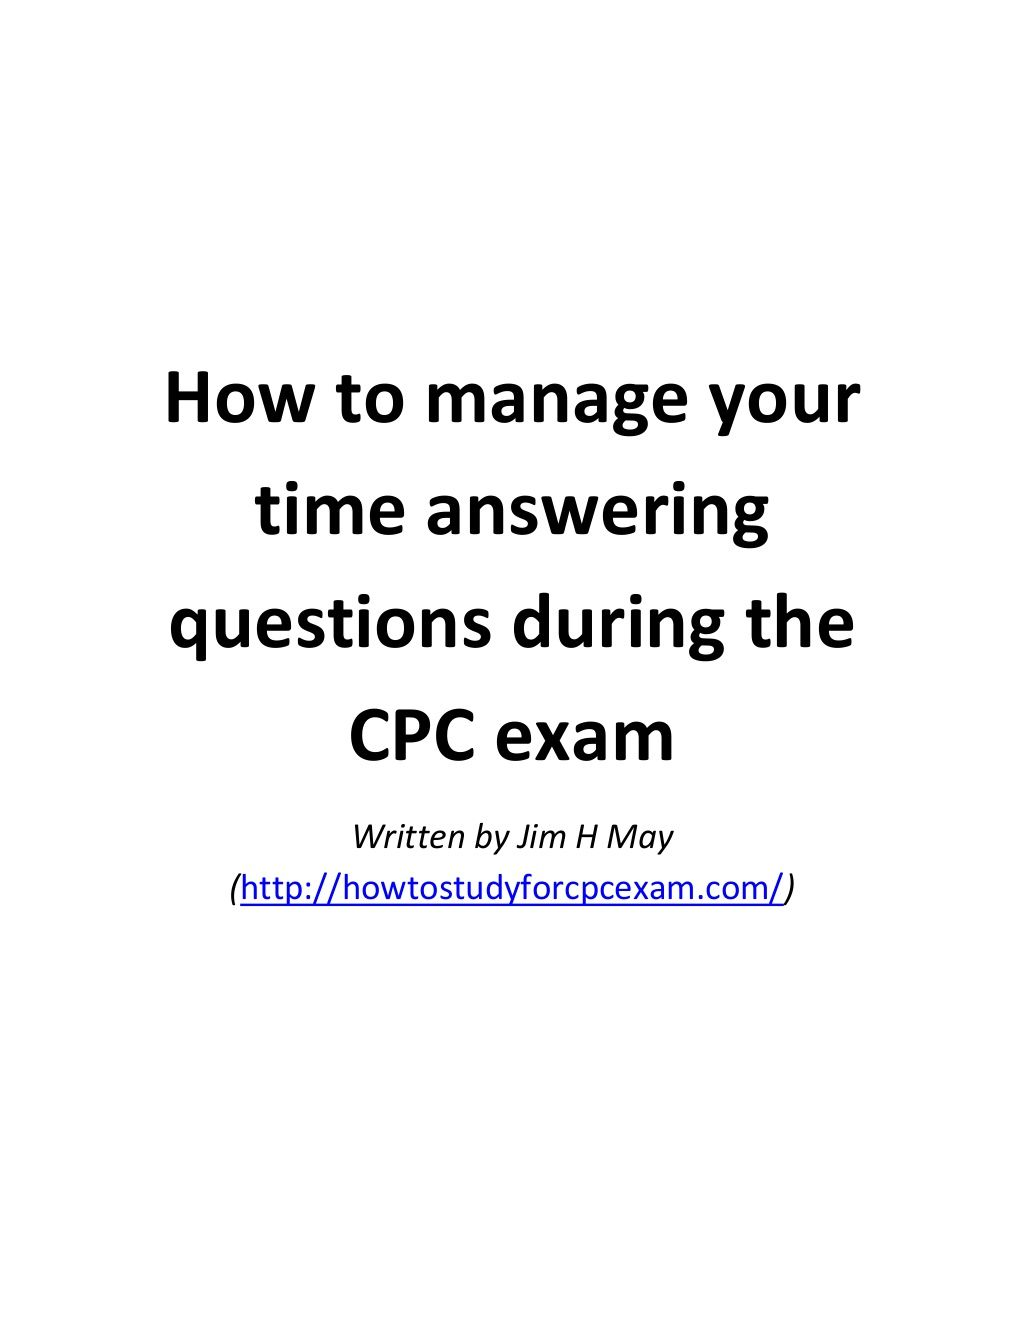 How to manage your time answering questions during the cpc